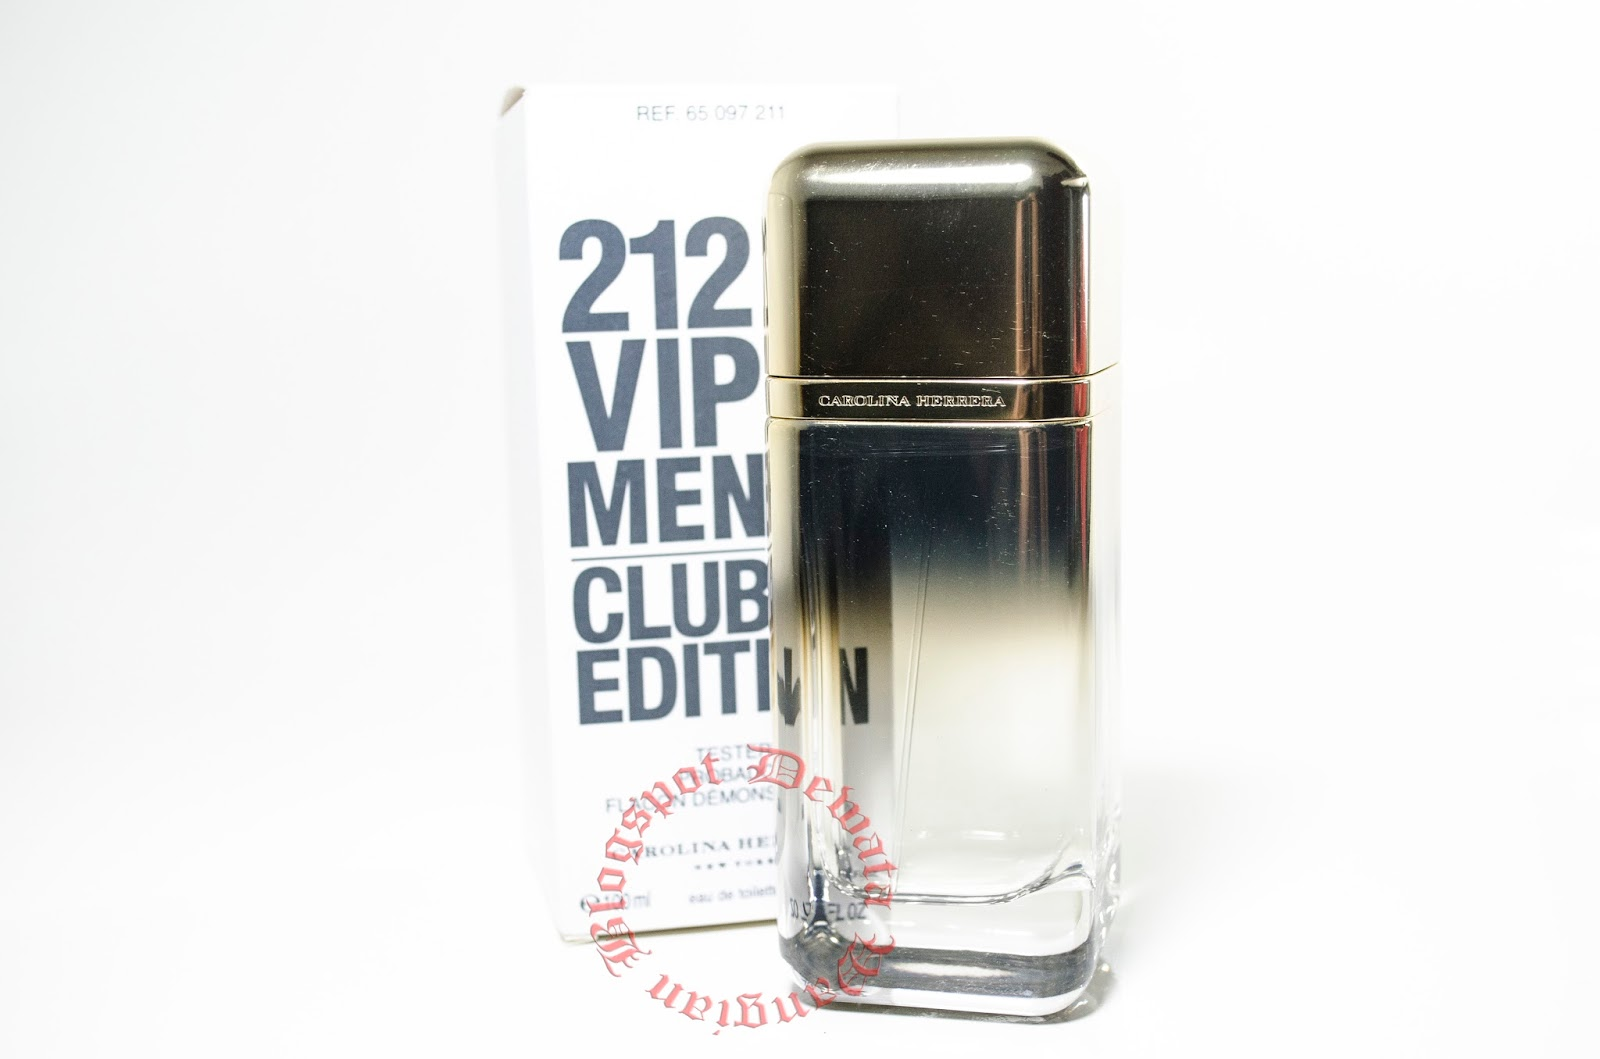 212 VIP MEN CLUB EDITION is a masculine fragrance that completes the 212 VIP  universe and represents the style and attitude of VIP men in New York. b082dd08d0